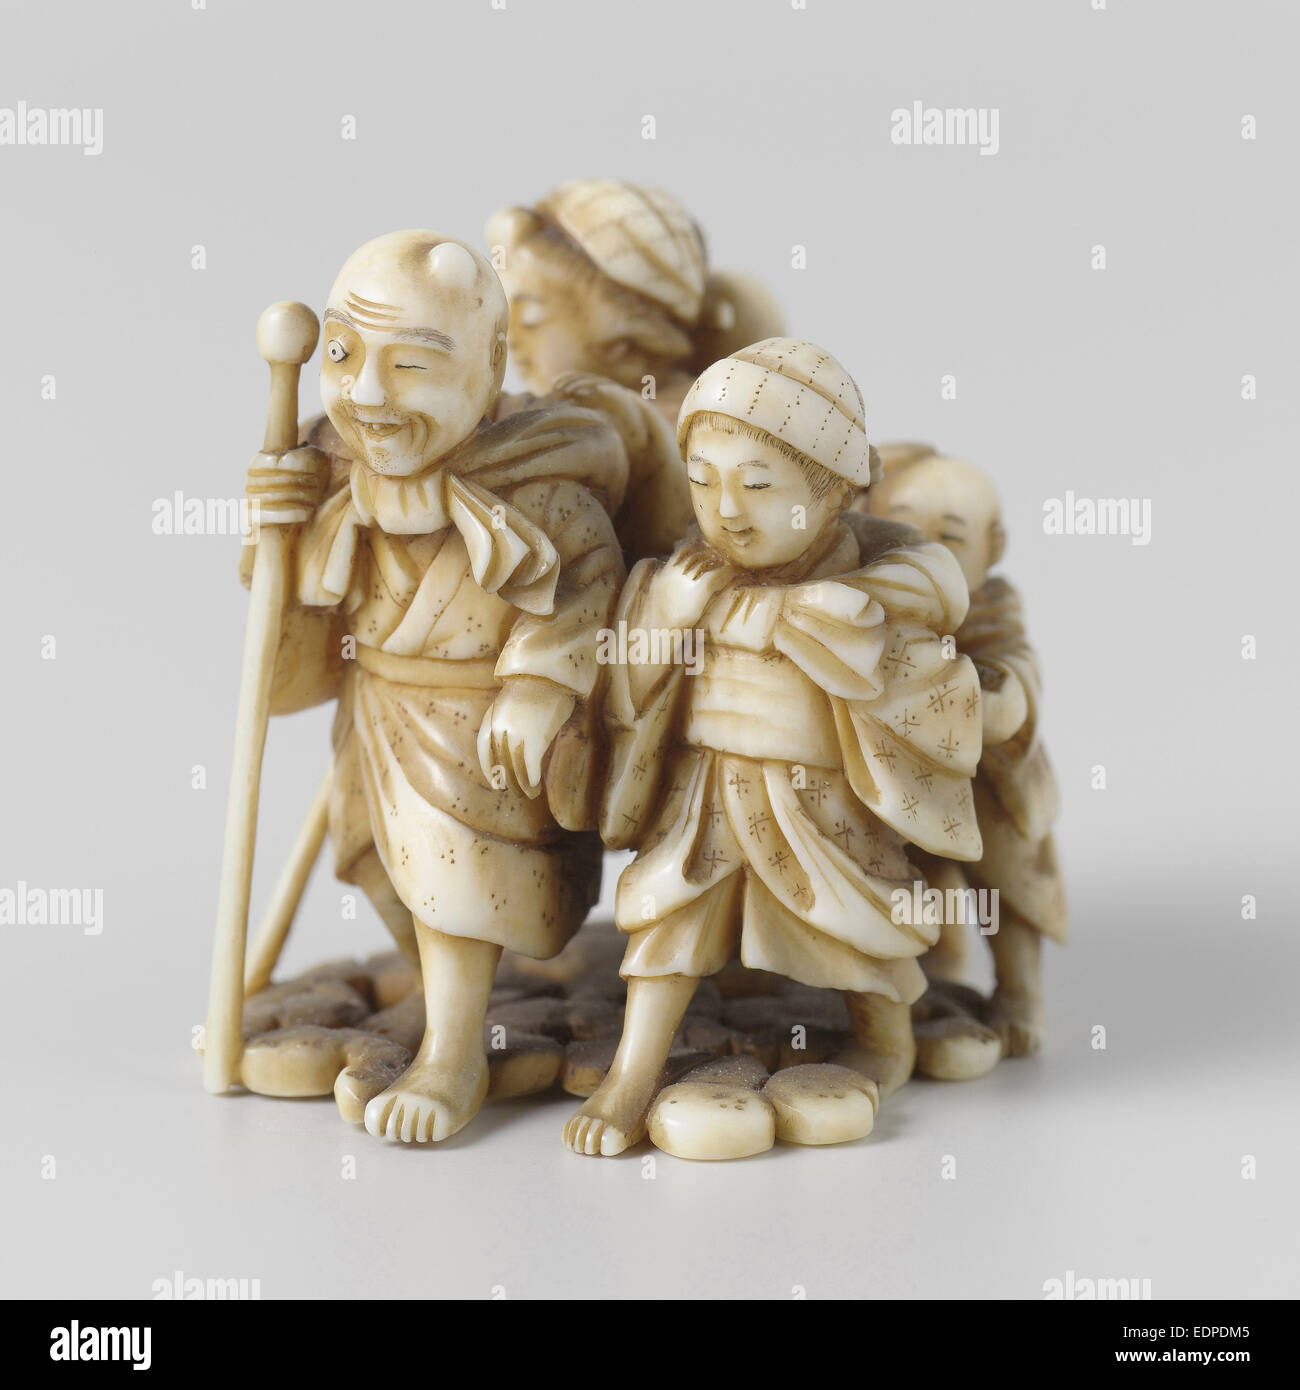 Netsuke, A group of five persons, 1700 - 1900 - Stock Image